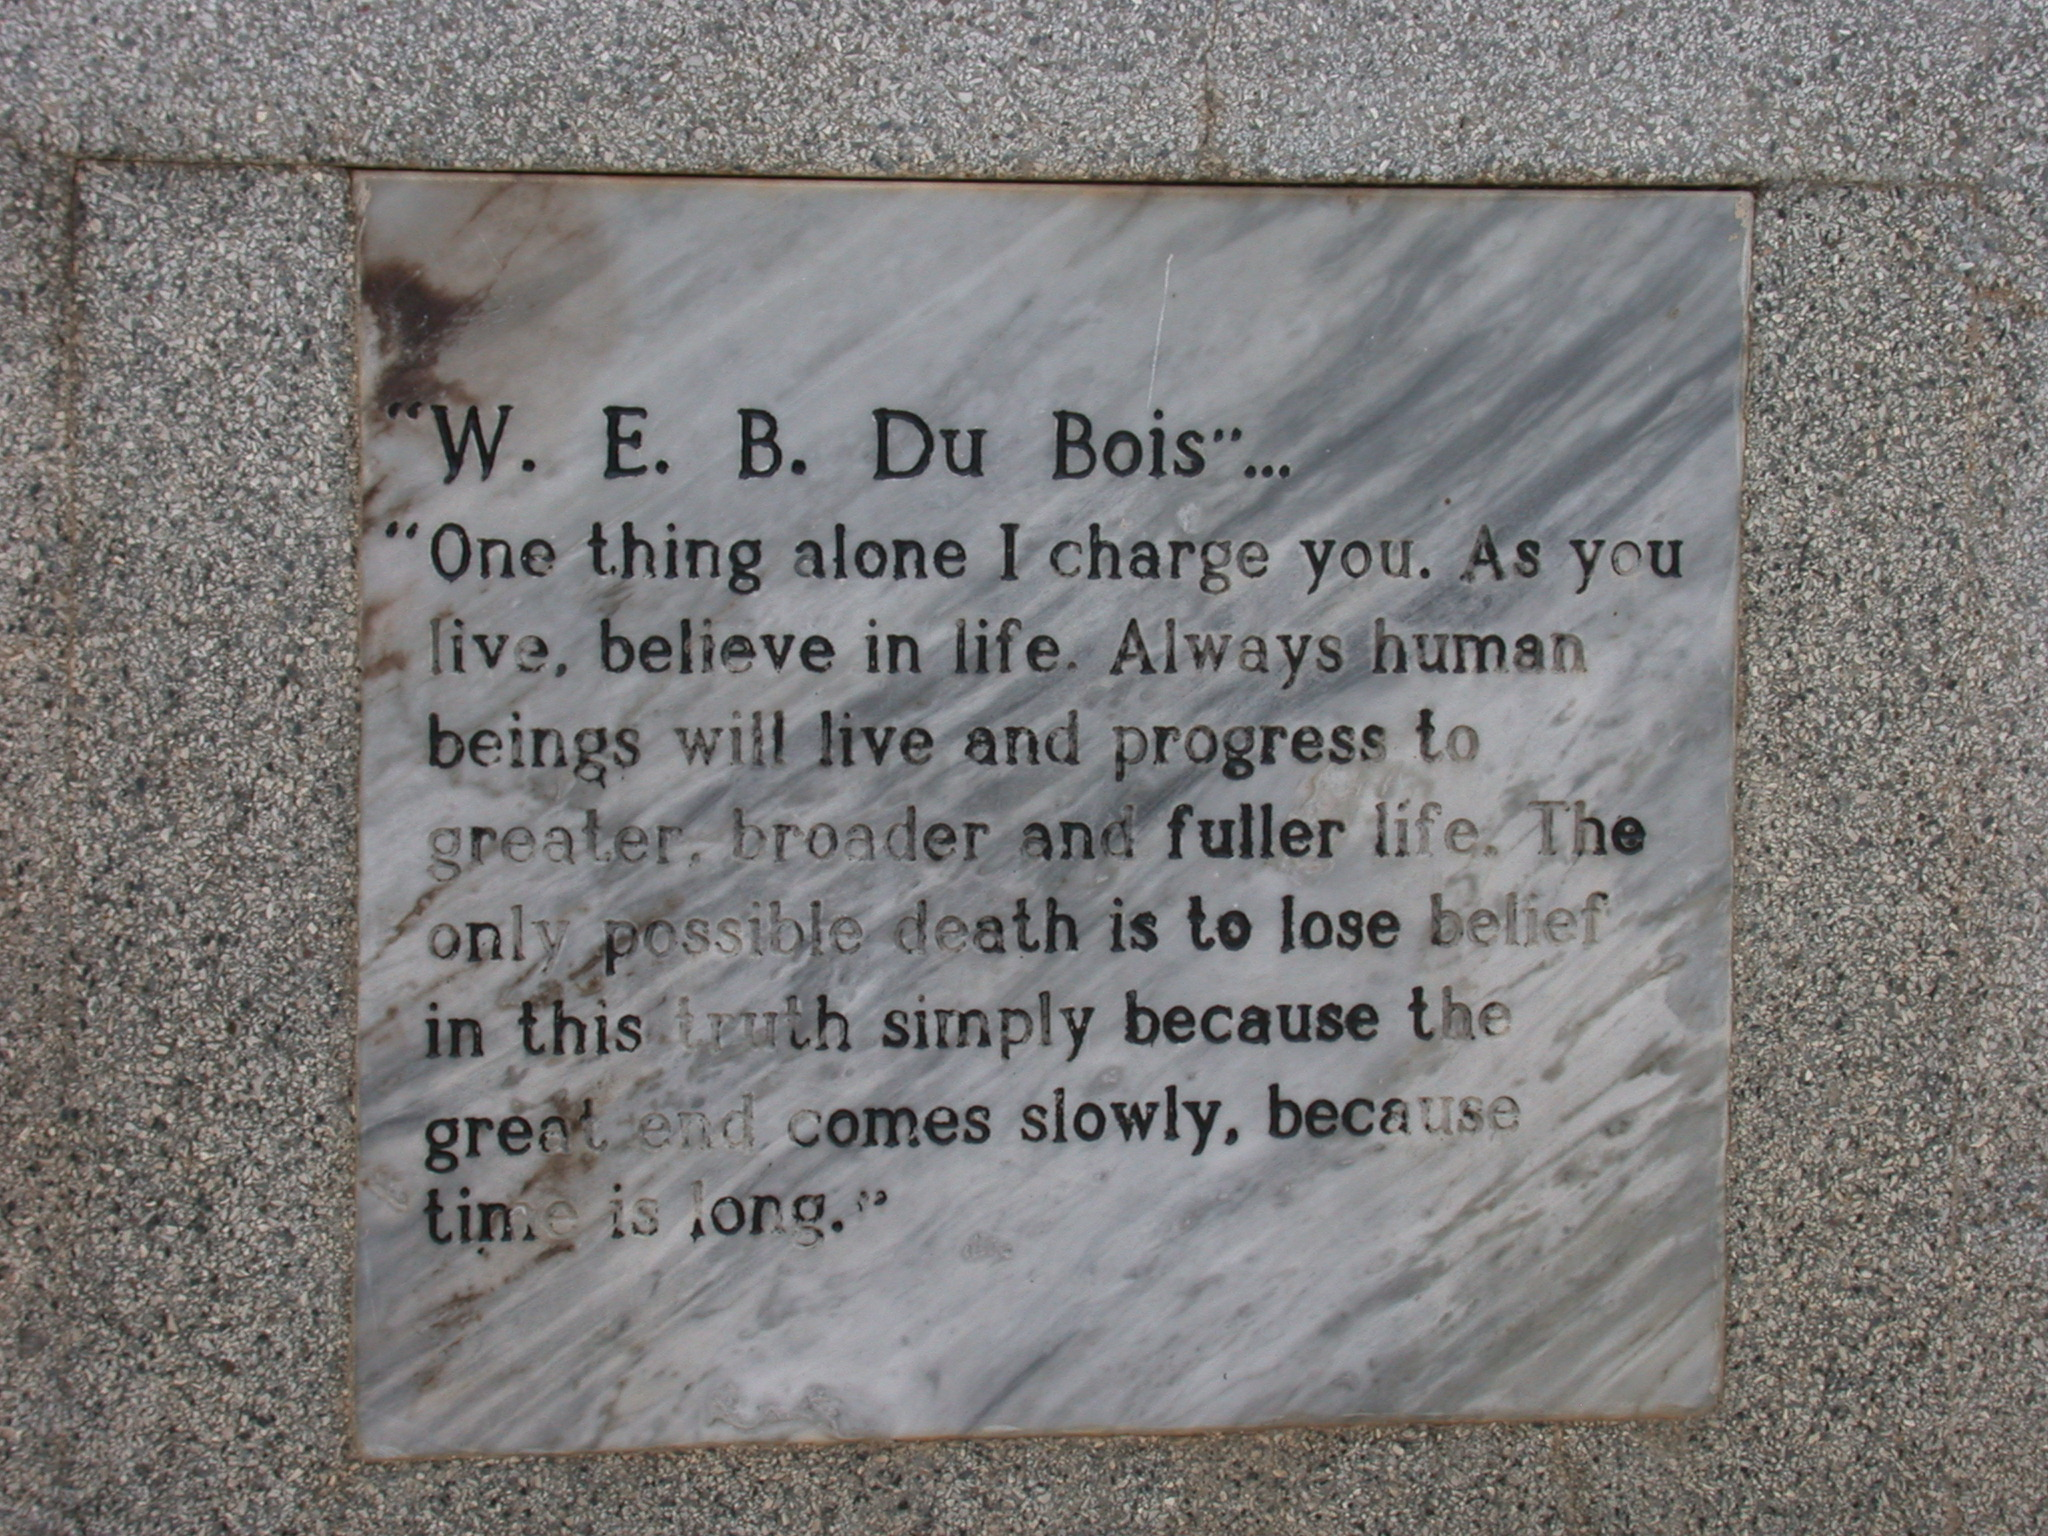 As You Live Believe in Life Quote on WEB DuBois Tomb, WEB DuBois Memorial Centre for Pan African Culture, Accra, Ghana